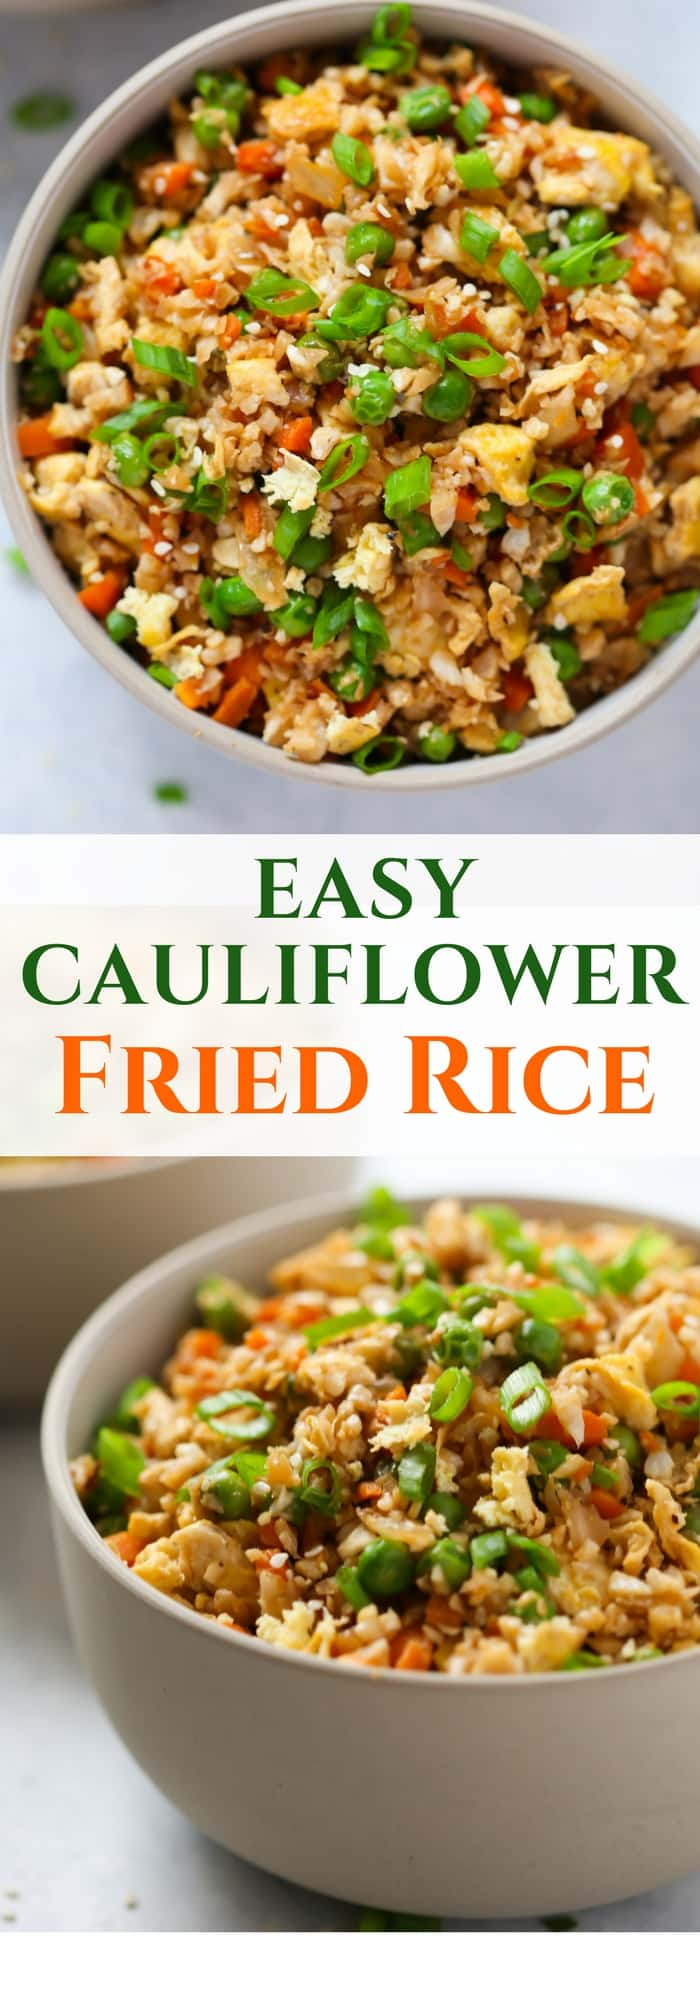 The Kitchen Cauliflower Fried Rice Recipe